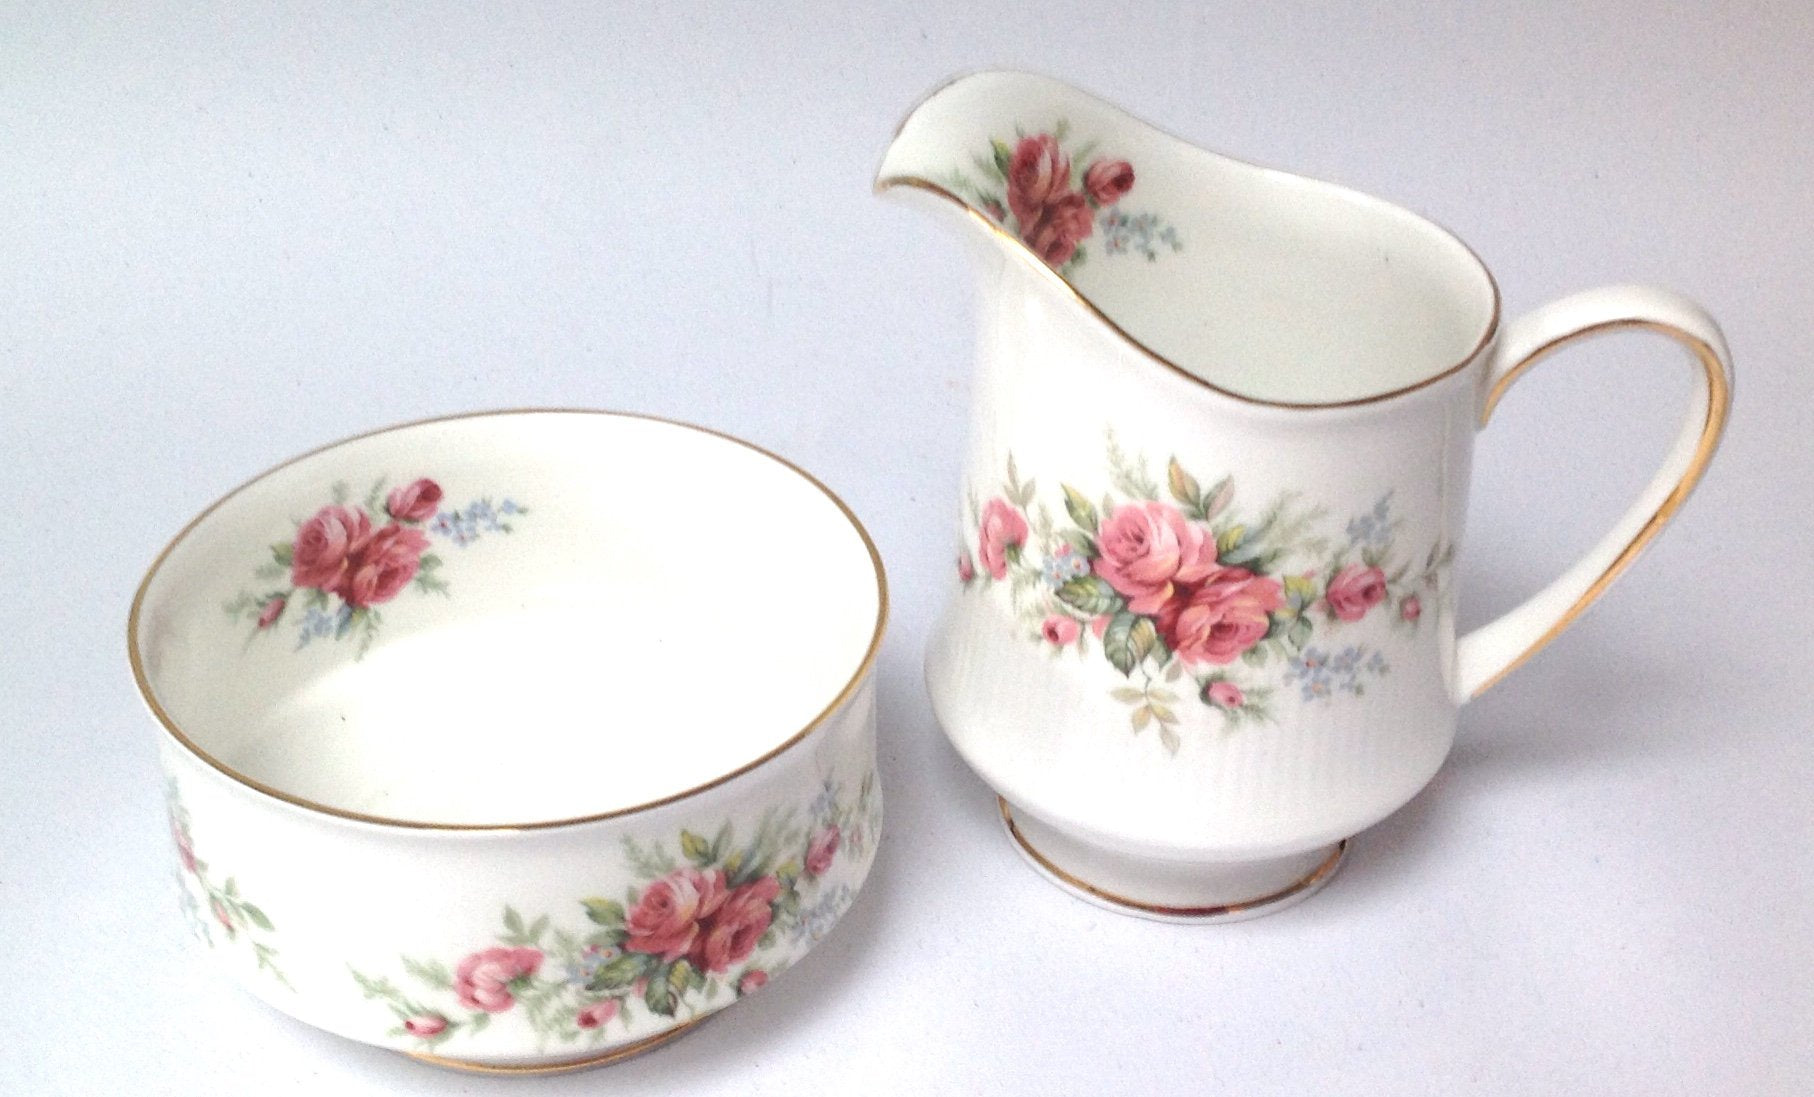 Royal Standard Milk Jug Creamer Sugar Bowl White Pink Roses English bone china afternoon high tea party crockery